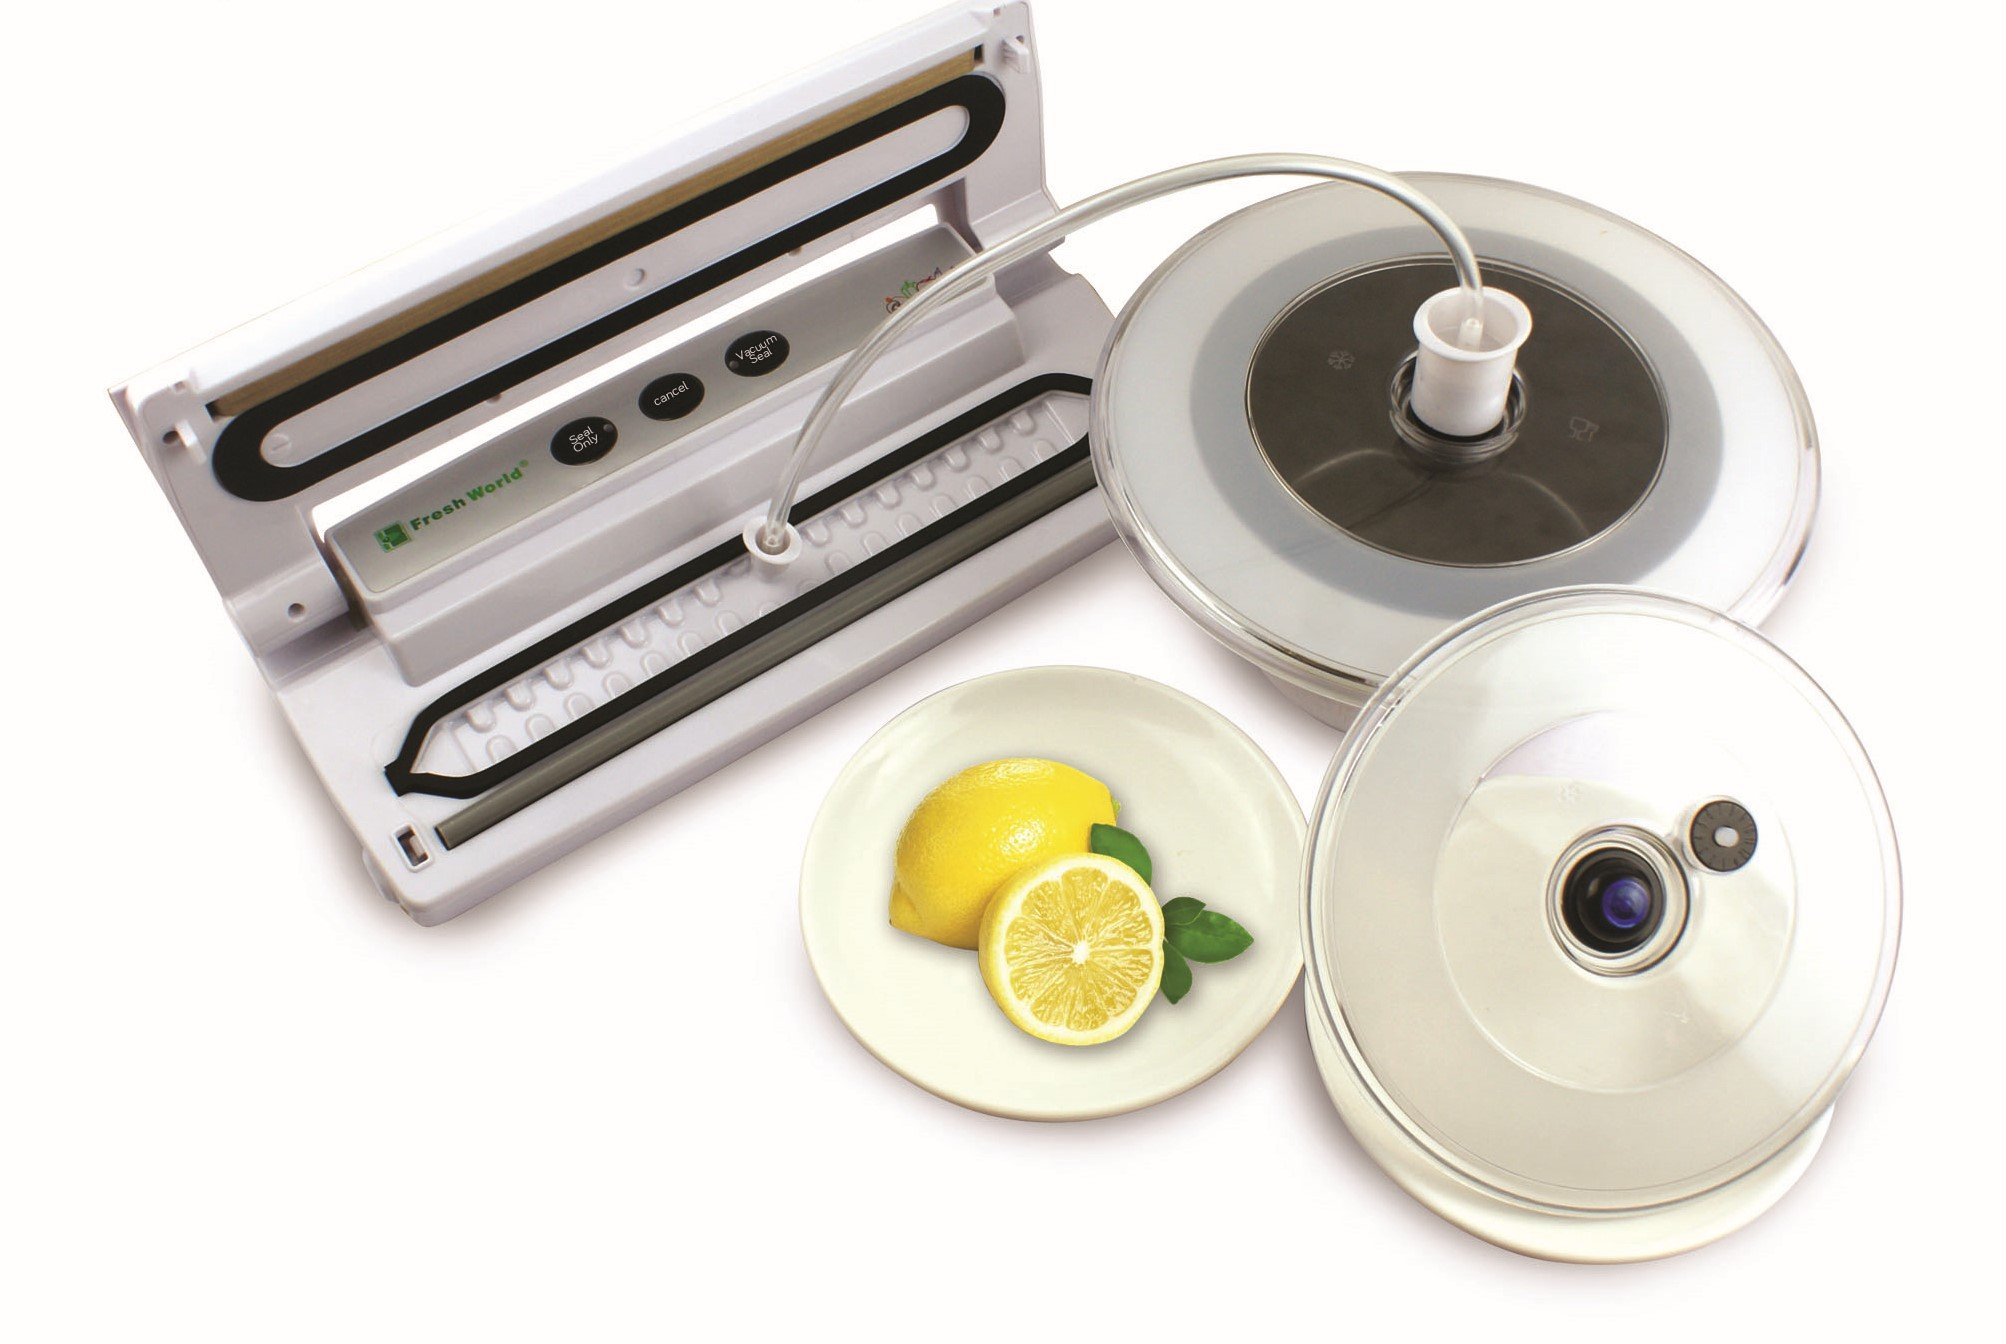 Fresh World Vacuum Sealer for Long-Term Food Preservation – Saves Time and Money; Works With Dry and Wet Food - Simple Easy to use 1 Button Seal by Fresh World